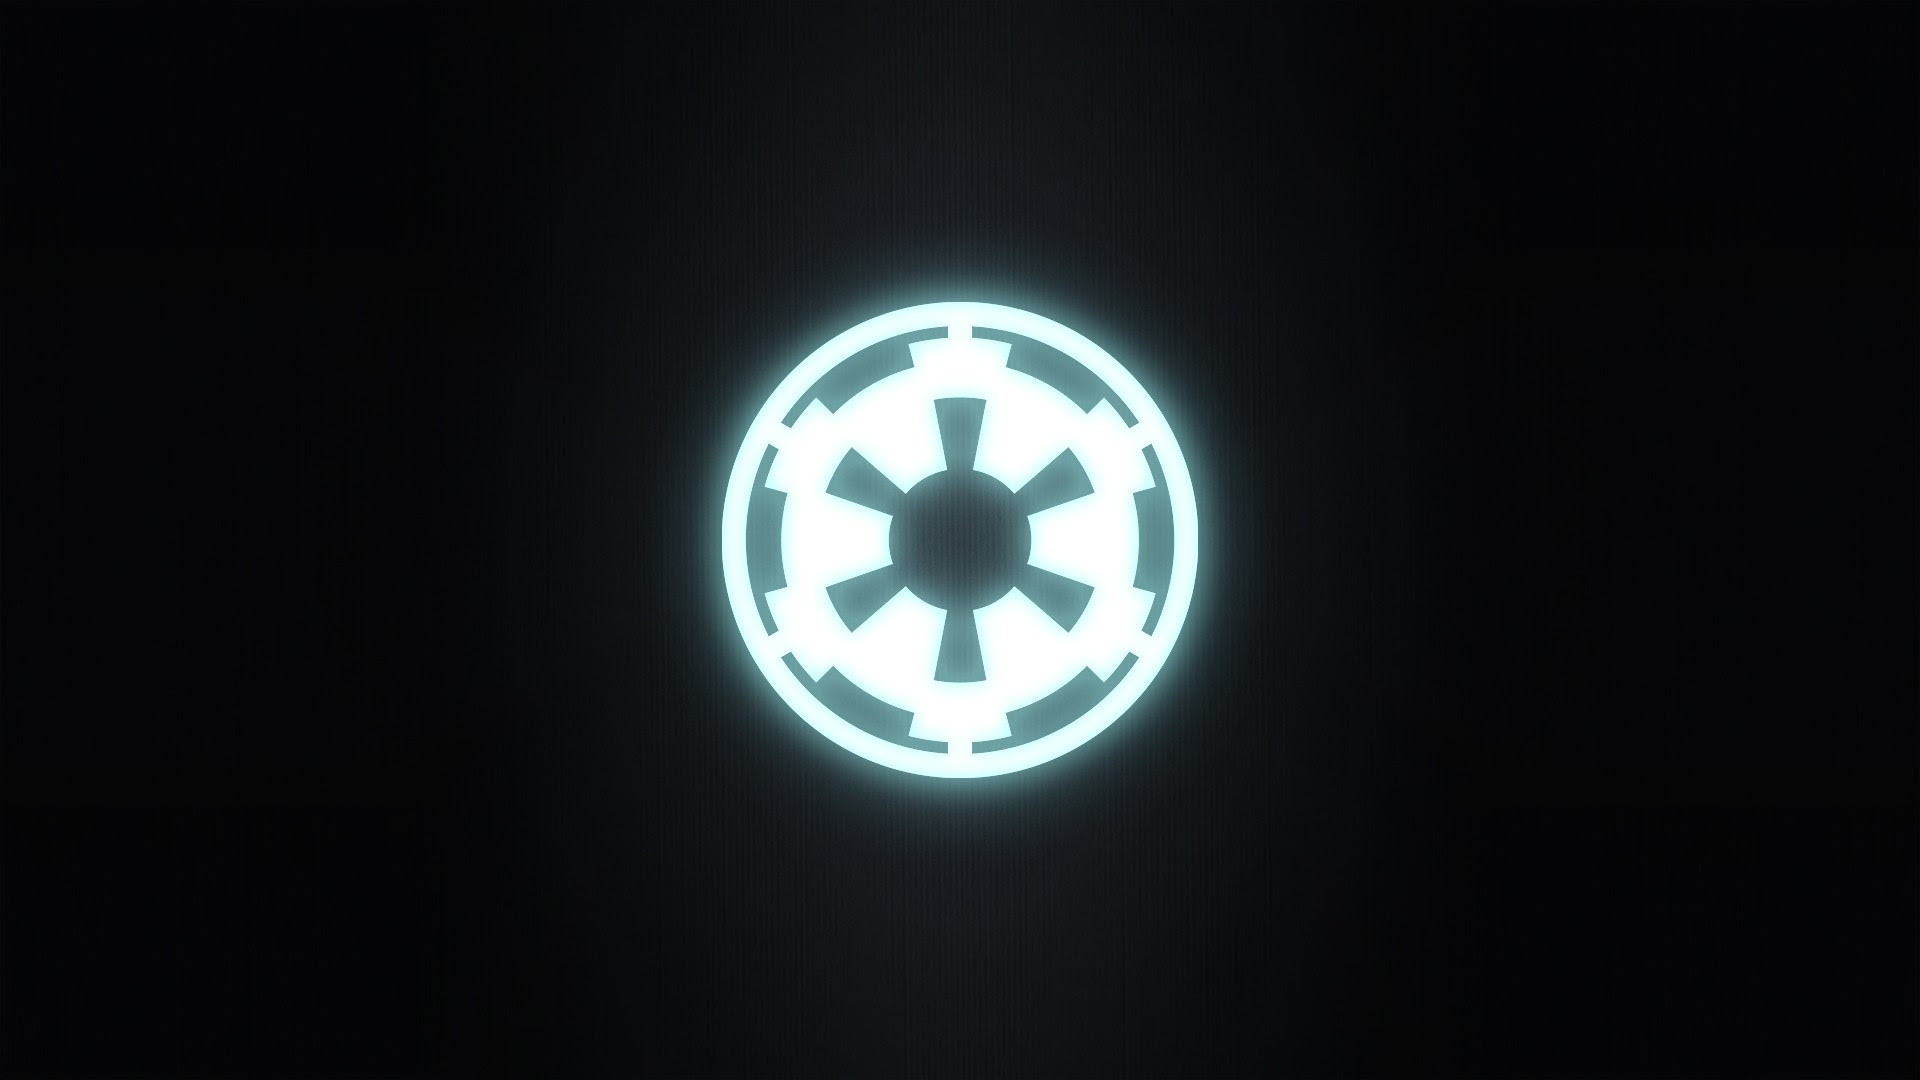 Best Of Empire Wallpaper Star Wars Logo Pictures